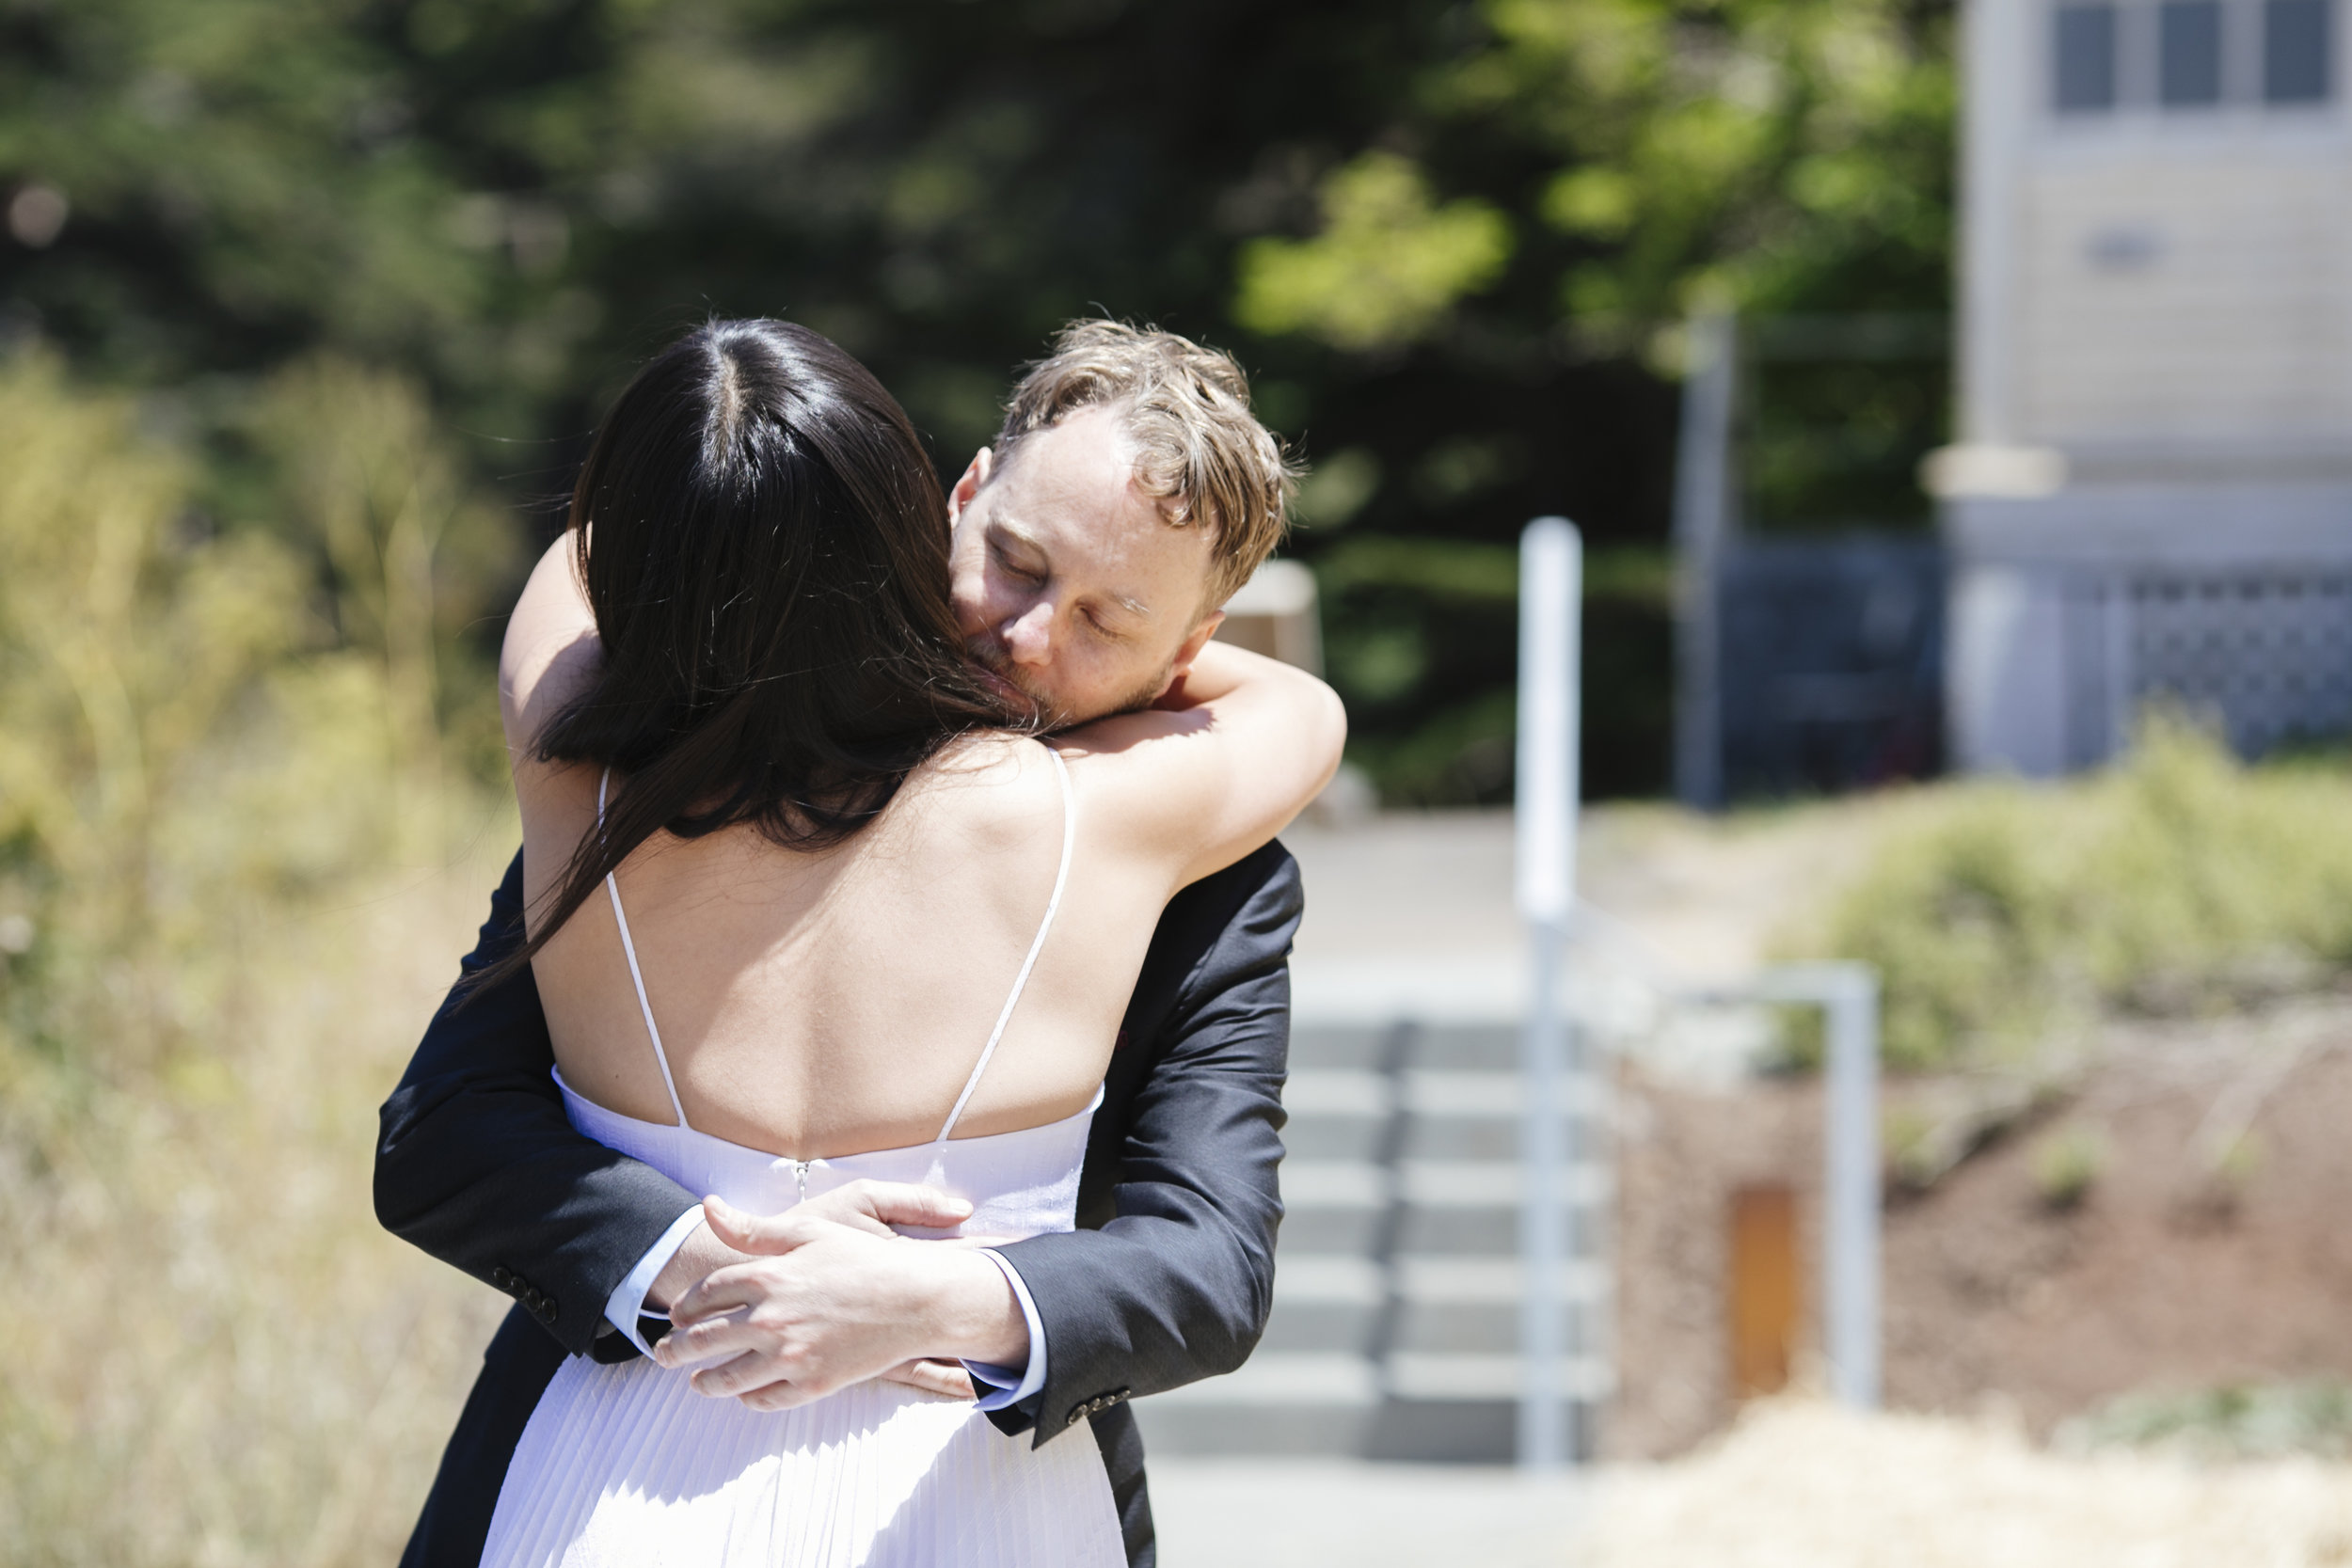 StephJeff_WeddingPreview_JB_6954.jpg